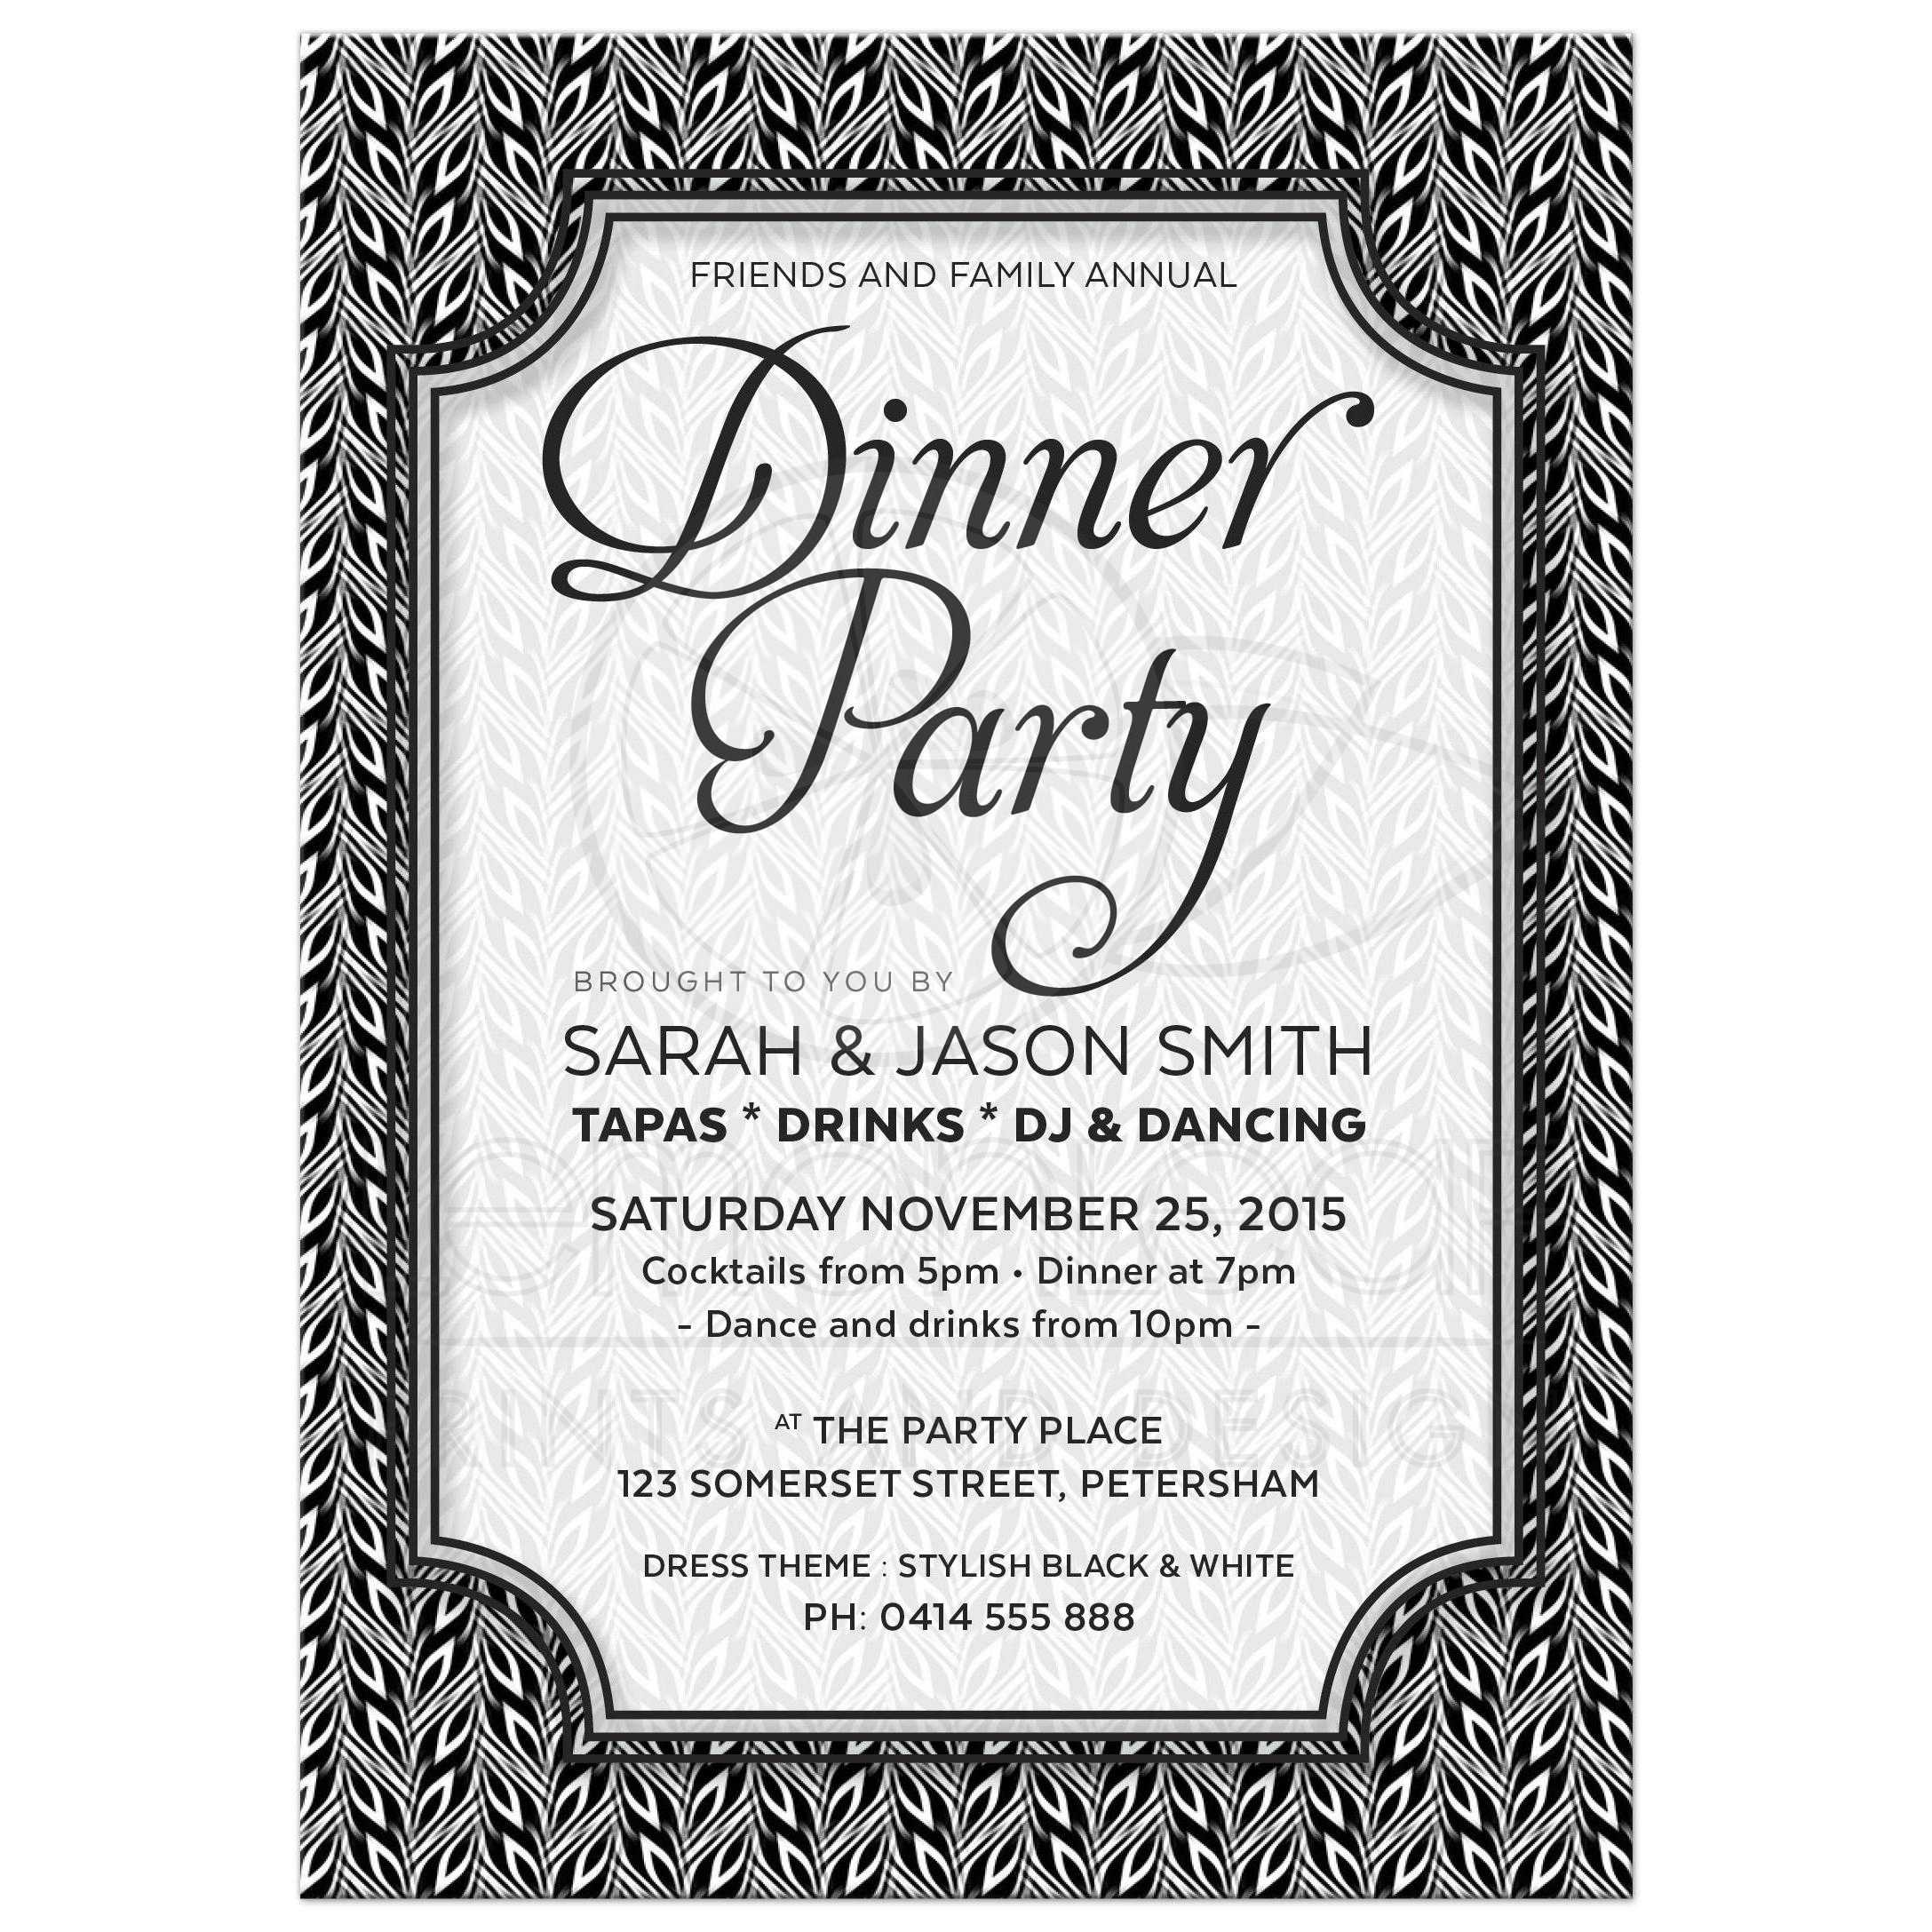 Black and white dinner party invitation simply stylish 02 simply stylish 2 black white dinner party invite stopboris Choice Image